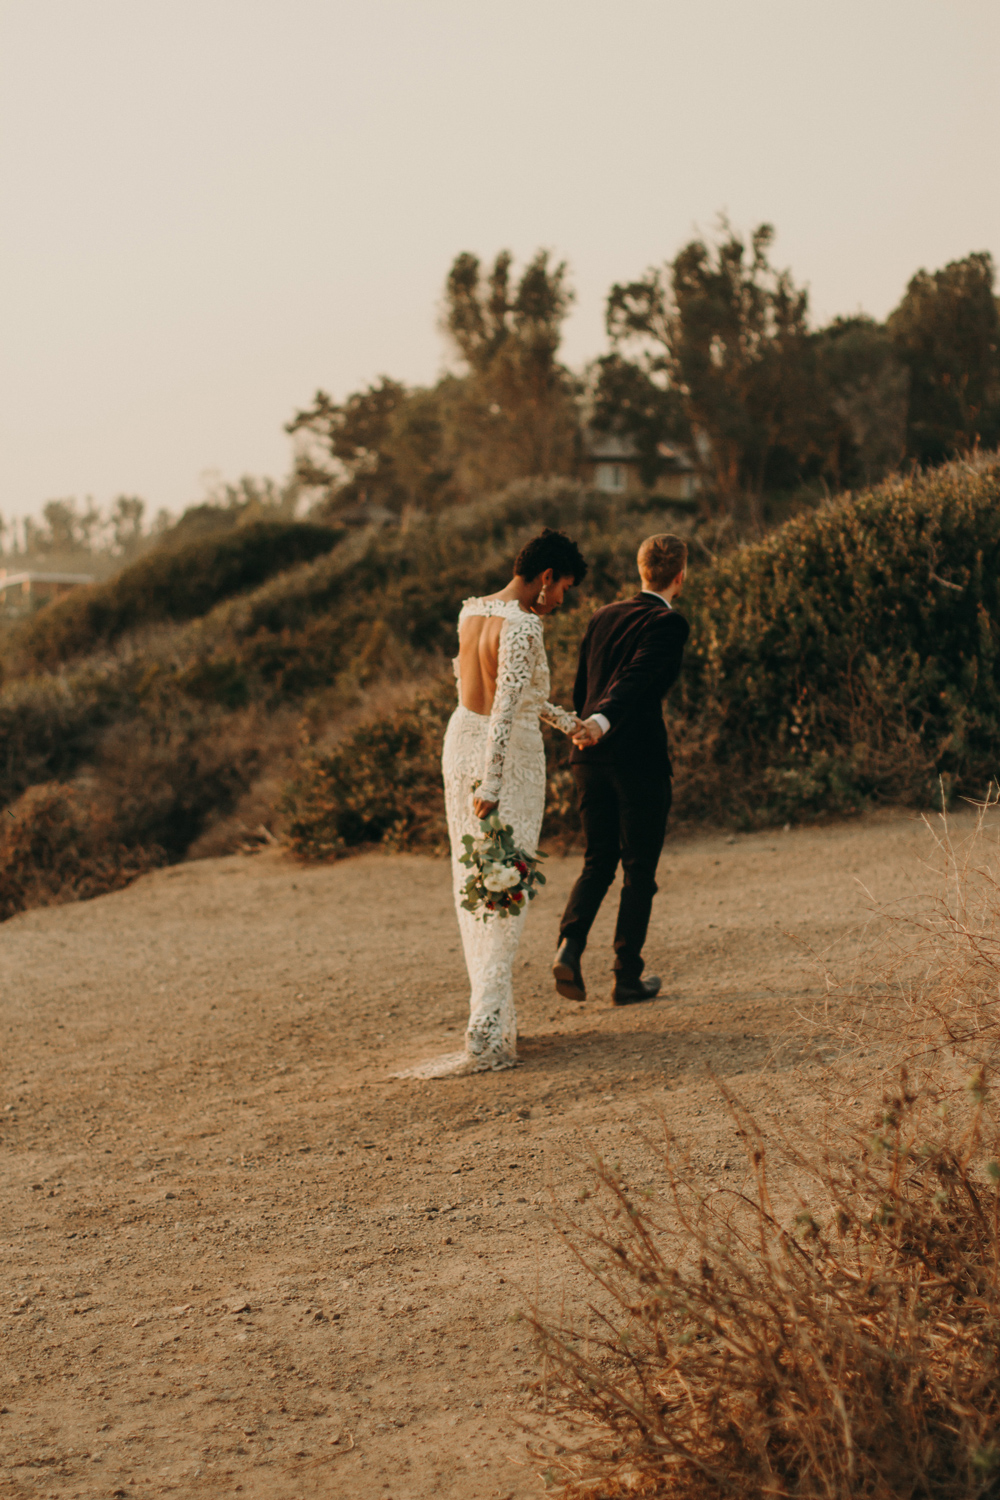 romantic-sunset-elopement-los-angeles.jpg